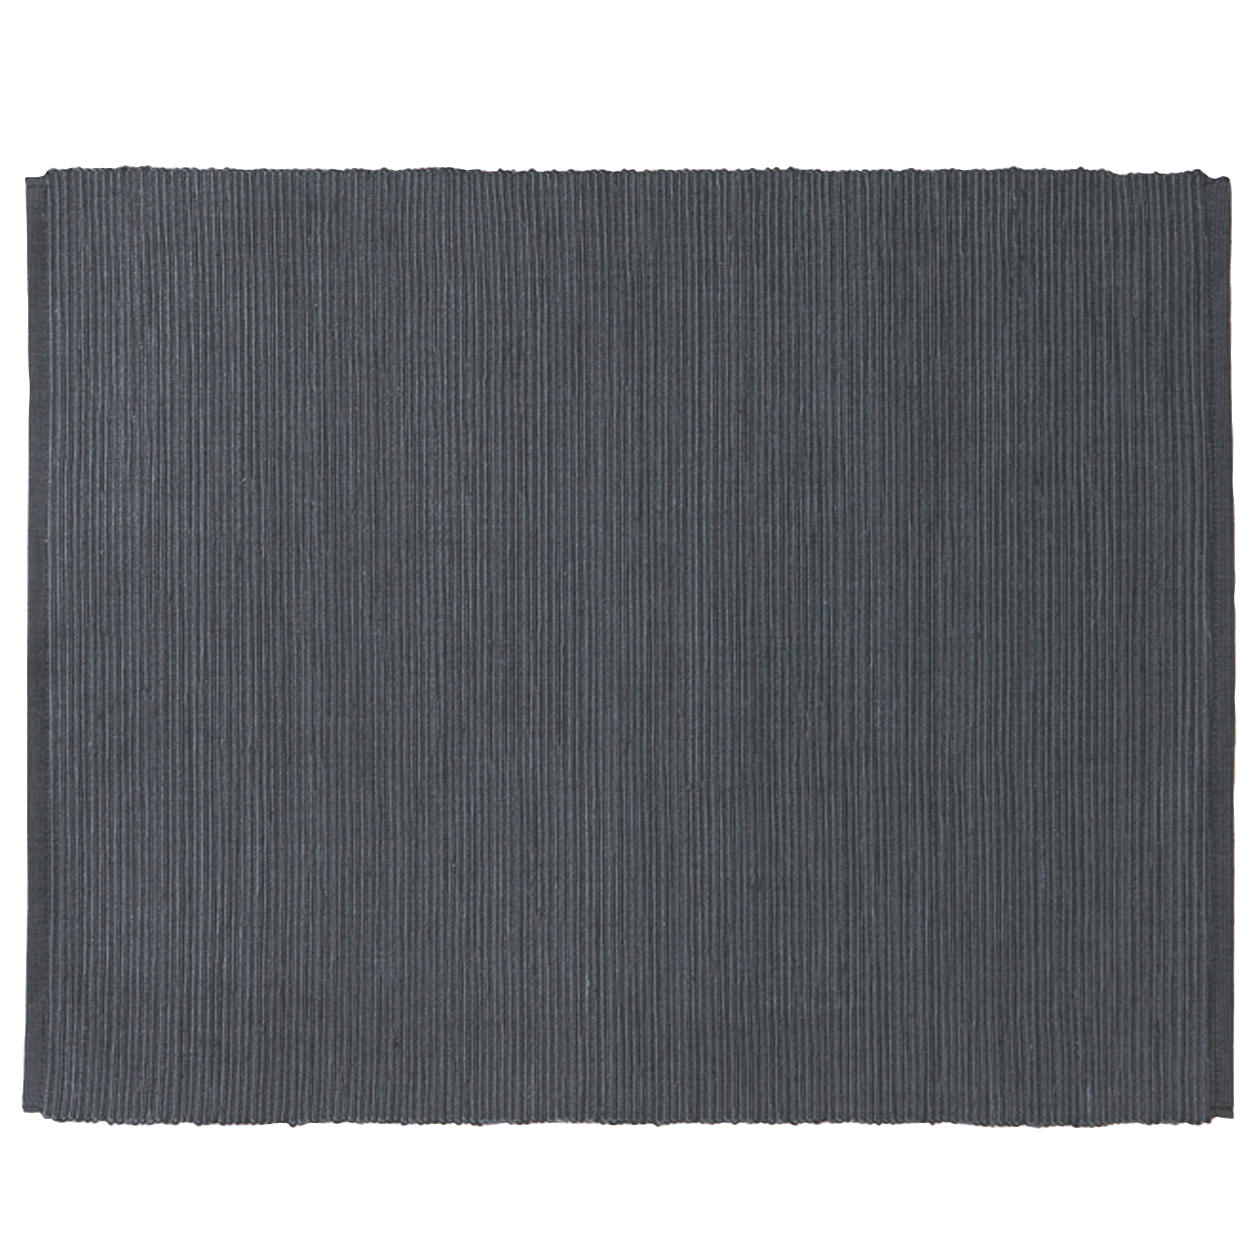 INDIAN COTTON HANDWOVEN PLACEMAT /  DARK GREY